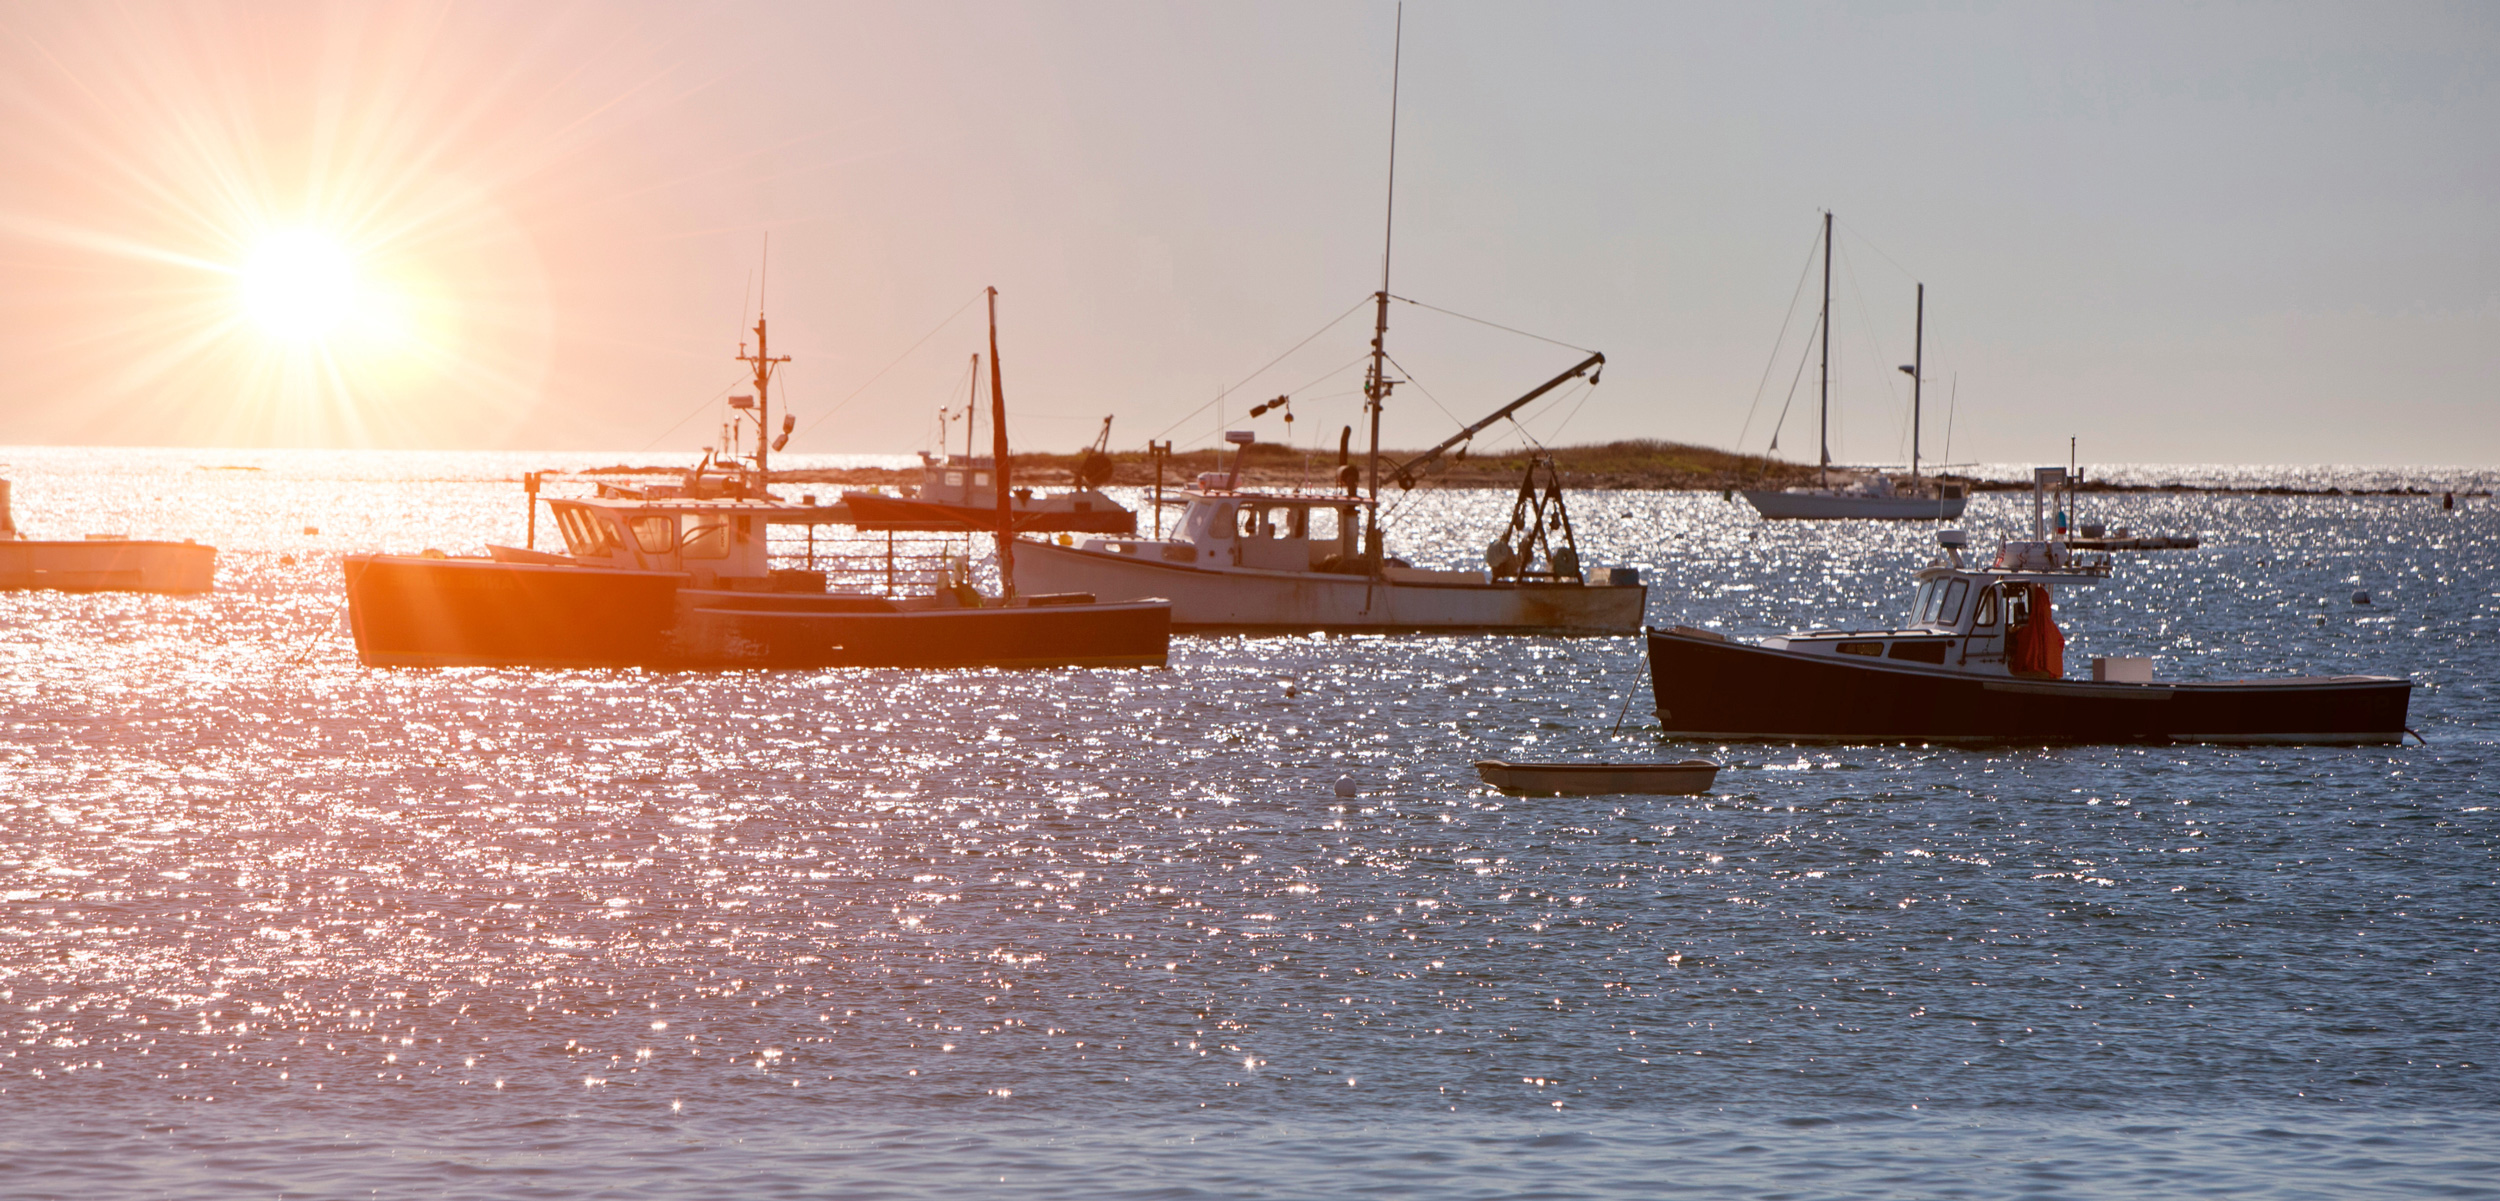 Boats on water with sun